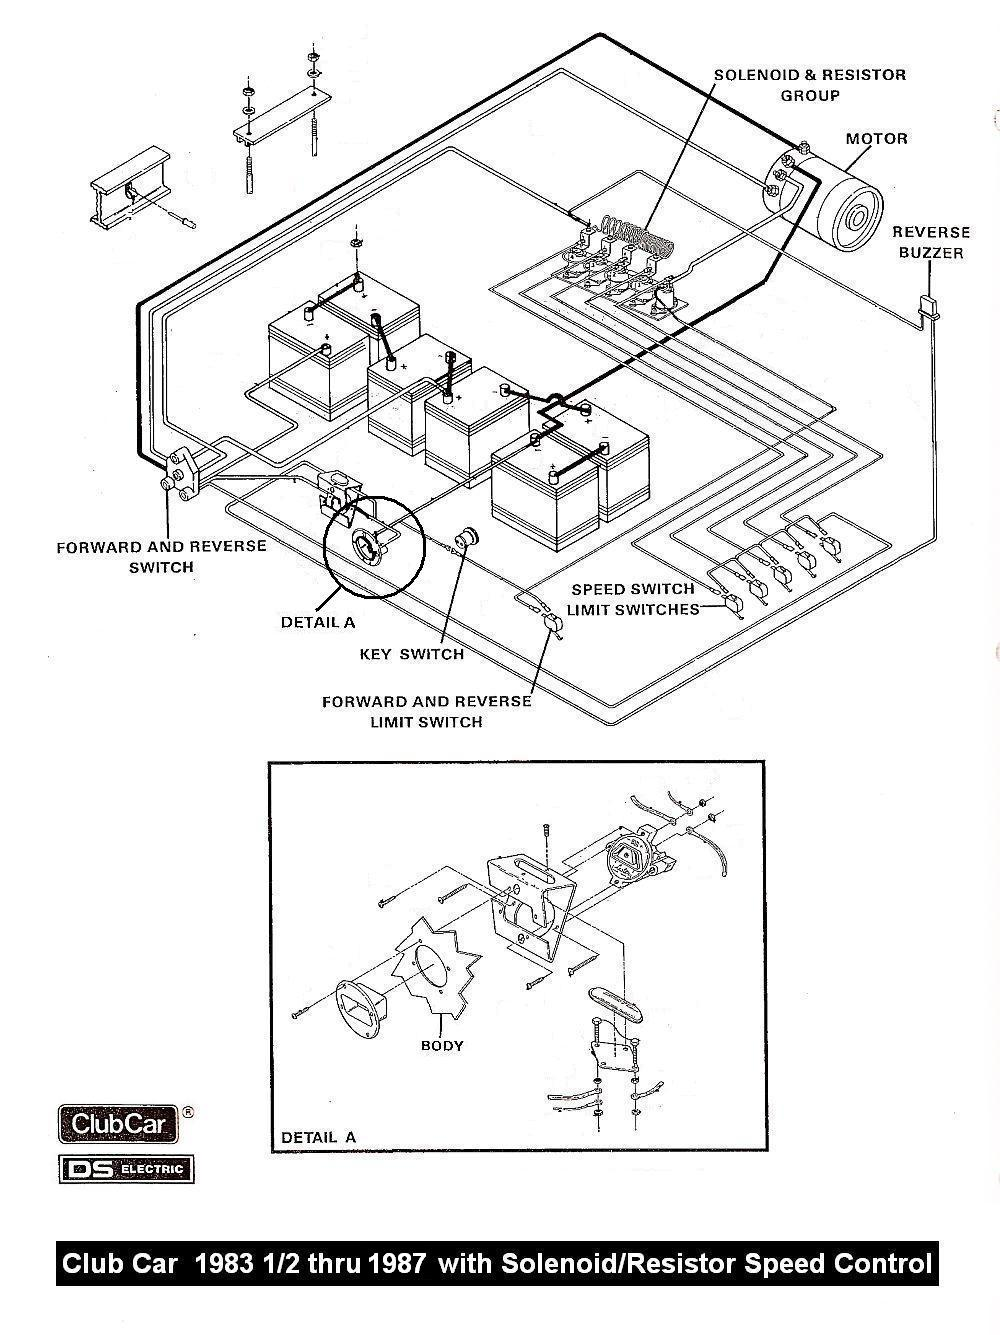 2002 club car ignition wiring diagram 1999 club car ignition wiring diagram